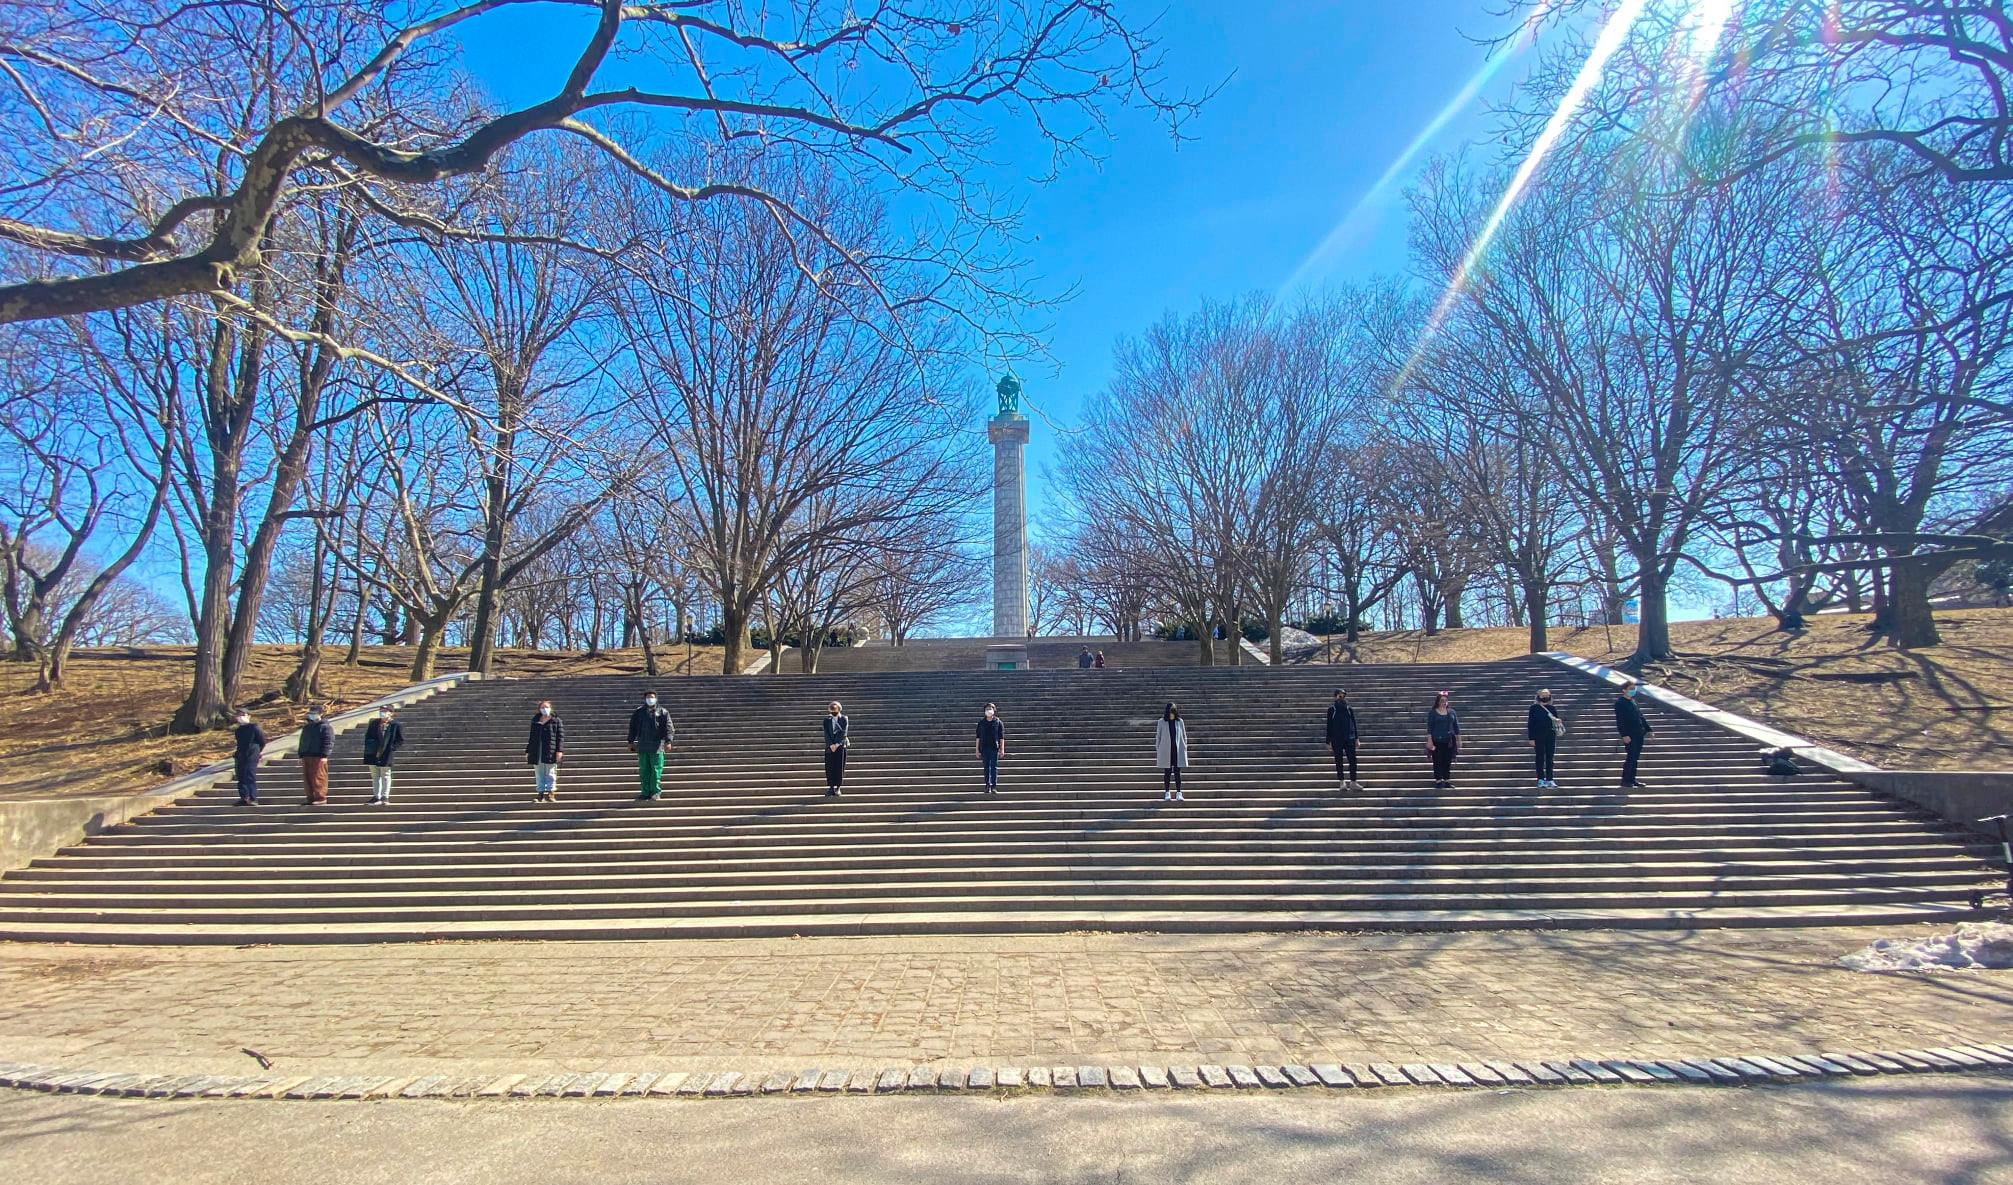 performers stand outside in a park on a large stone staircase with a blue sky and trees